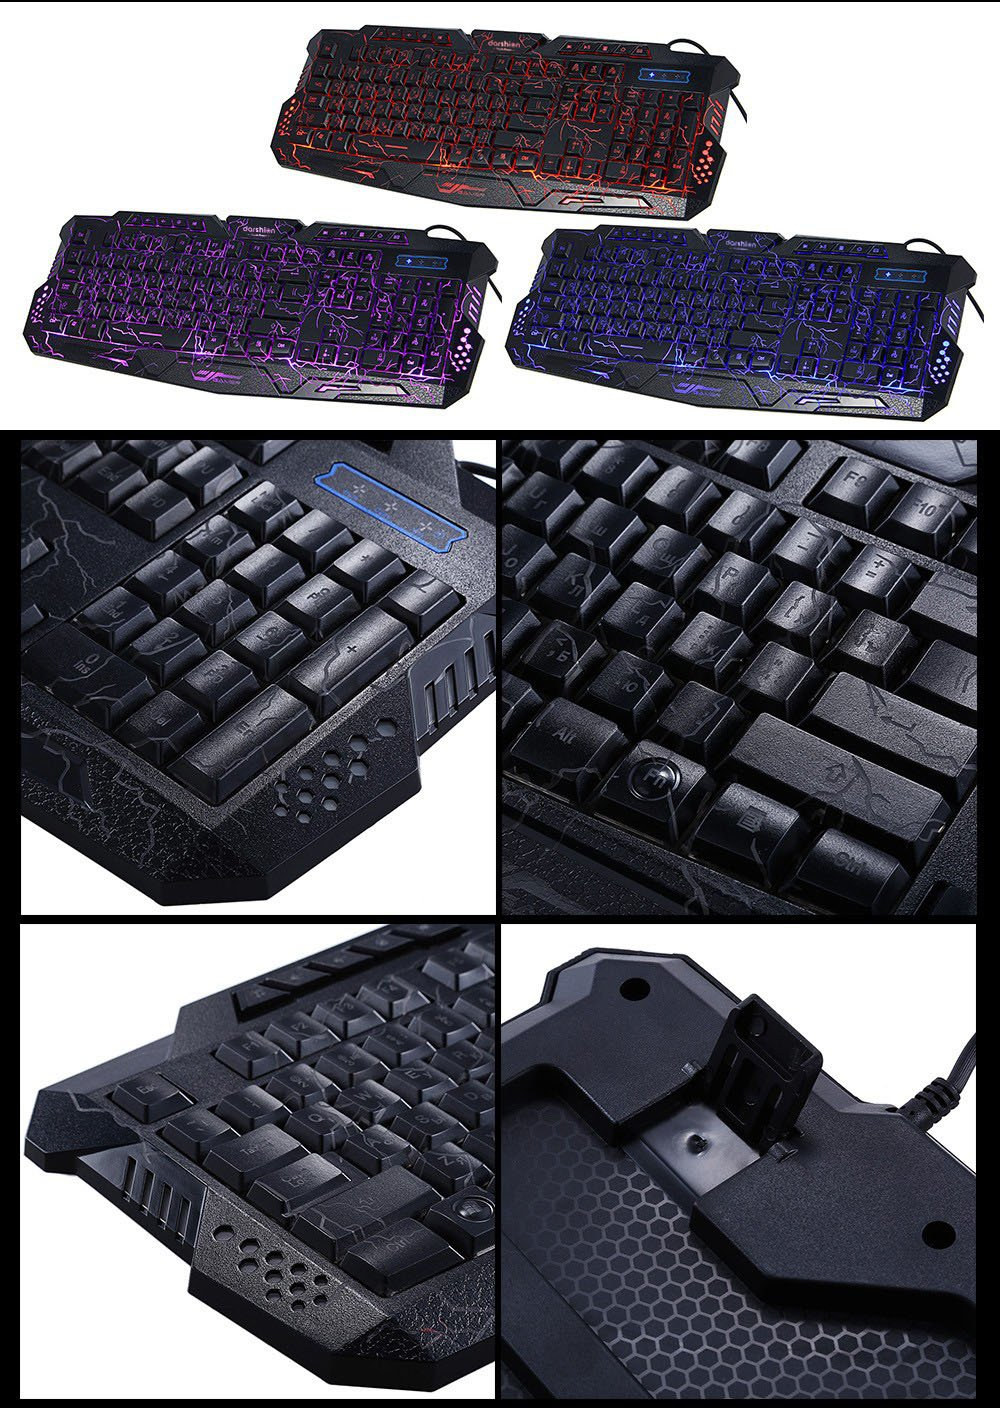 Gaming Backlight Keyboard LED Russian/English Layout USB Wired Colorful Breathing Waterproof for Desktop laptop Office keyboard